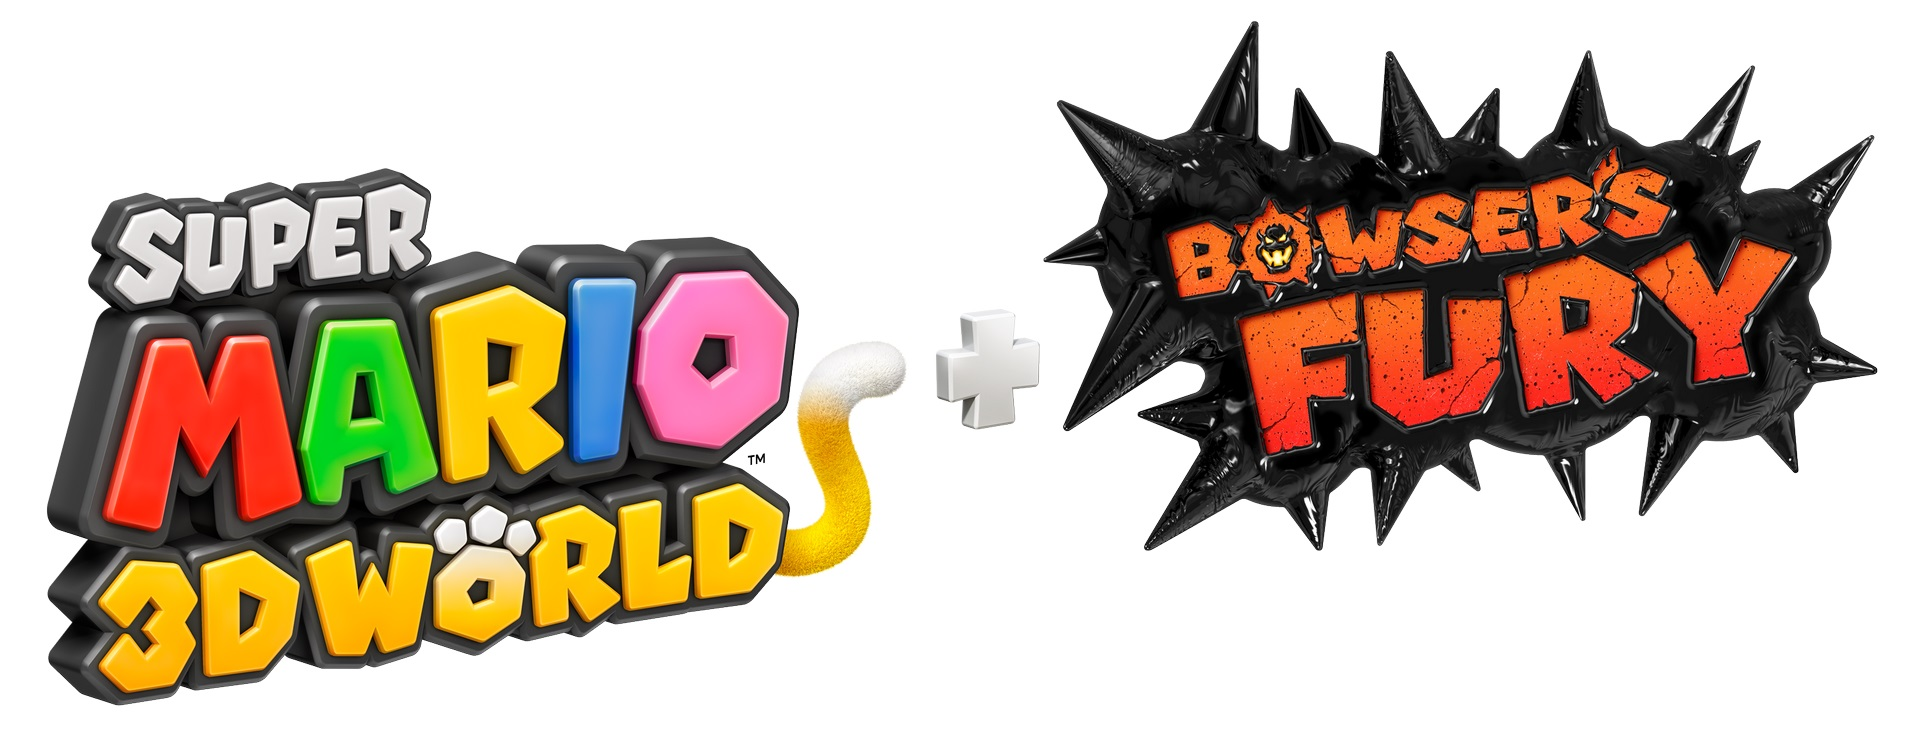 Super Mario 3D World + Bowser's Fury logo